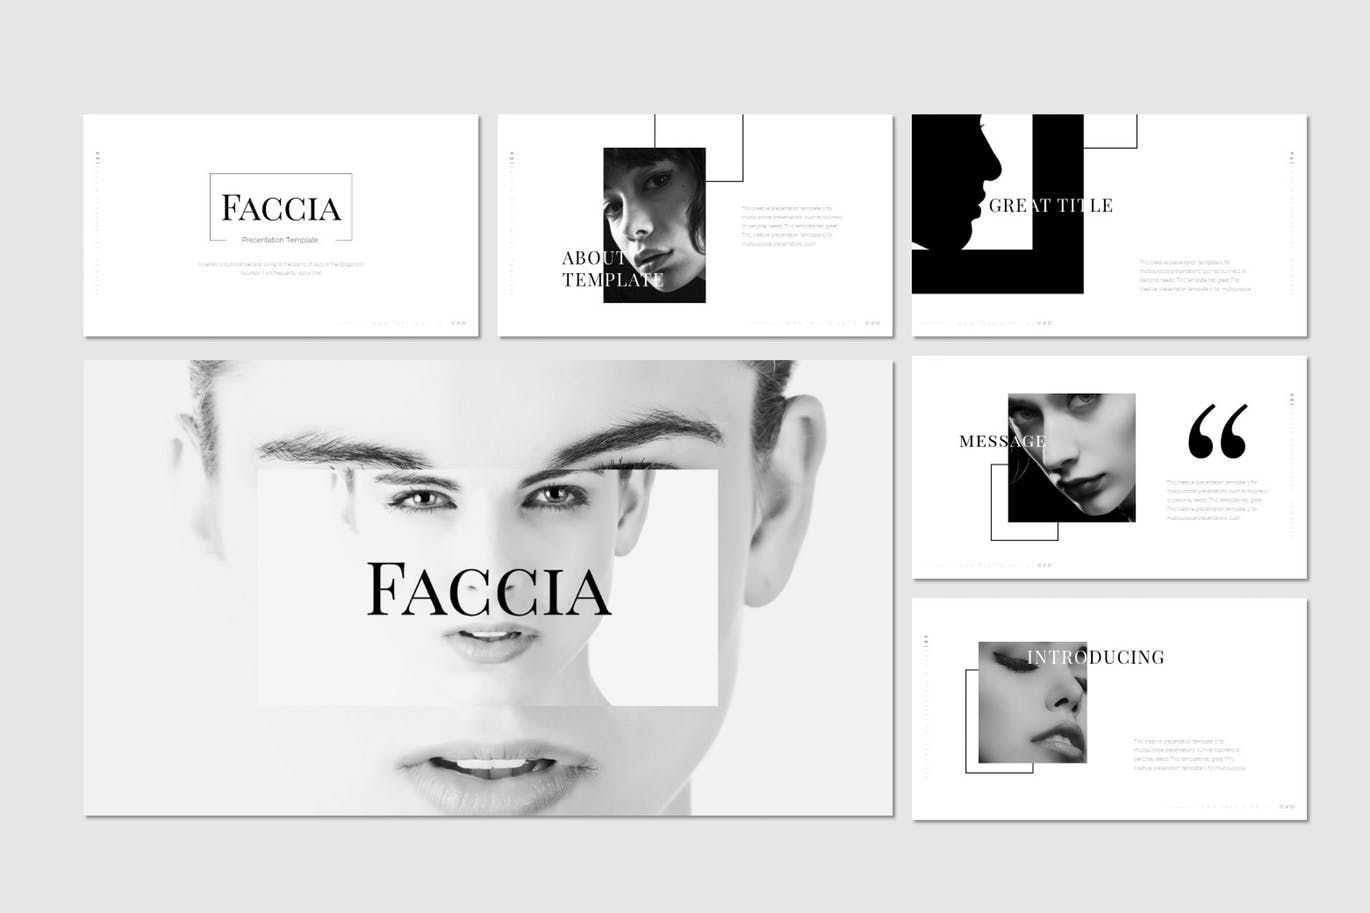 Faccia - PowerPoint Template, Slide 2, 07543, Presentation Templates — PoweredTemplate.com